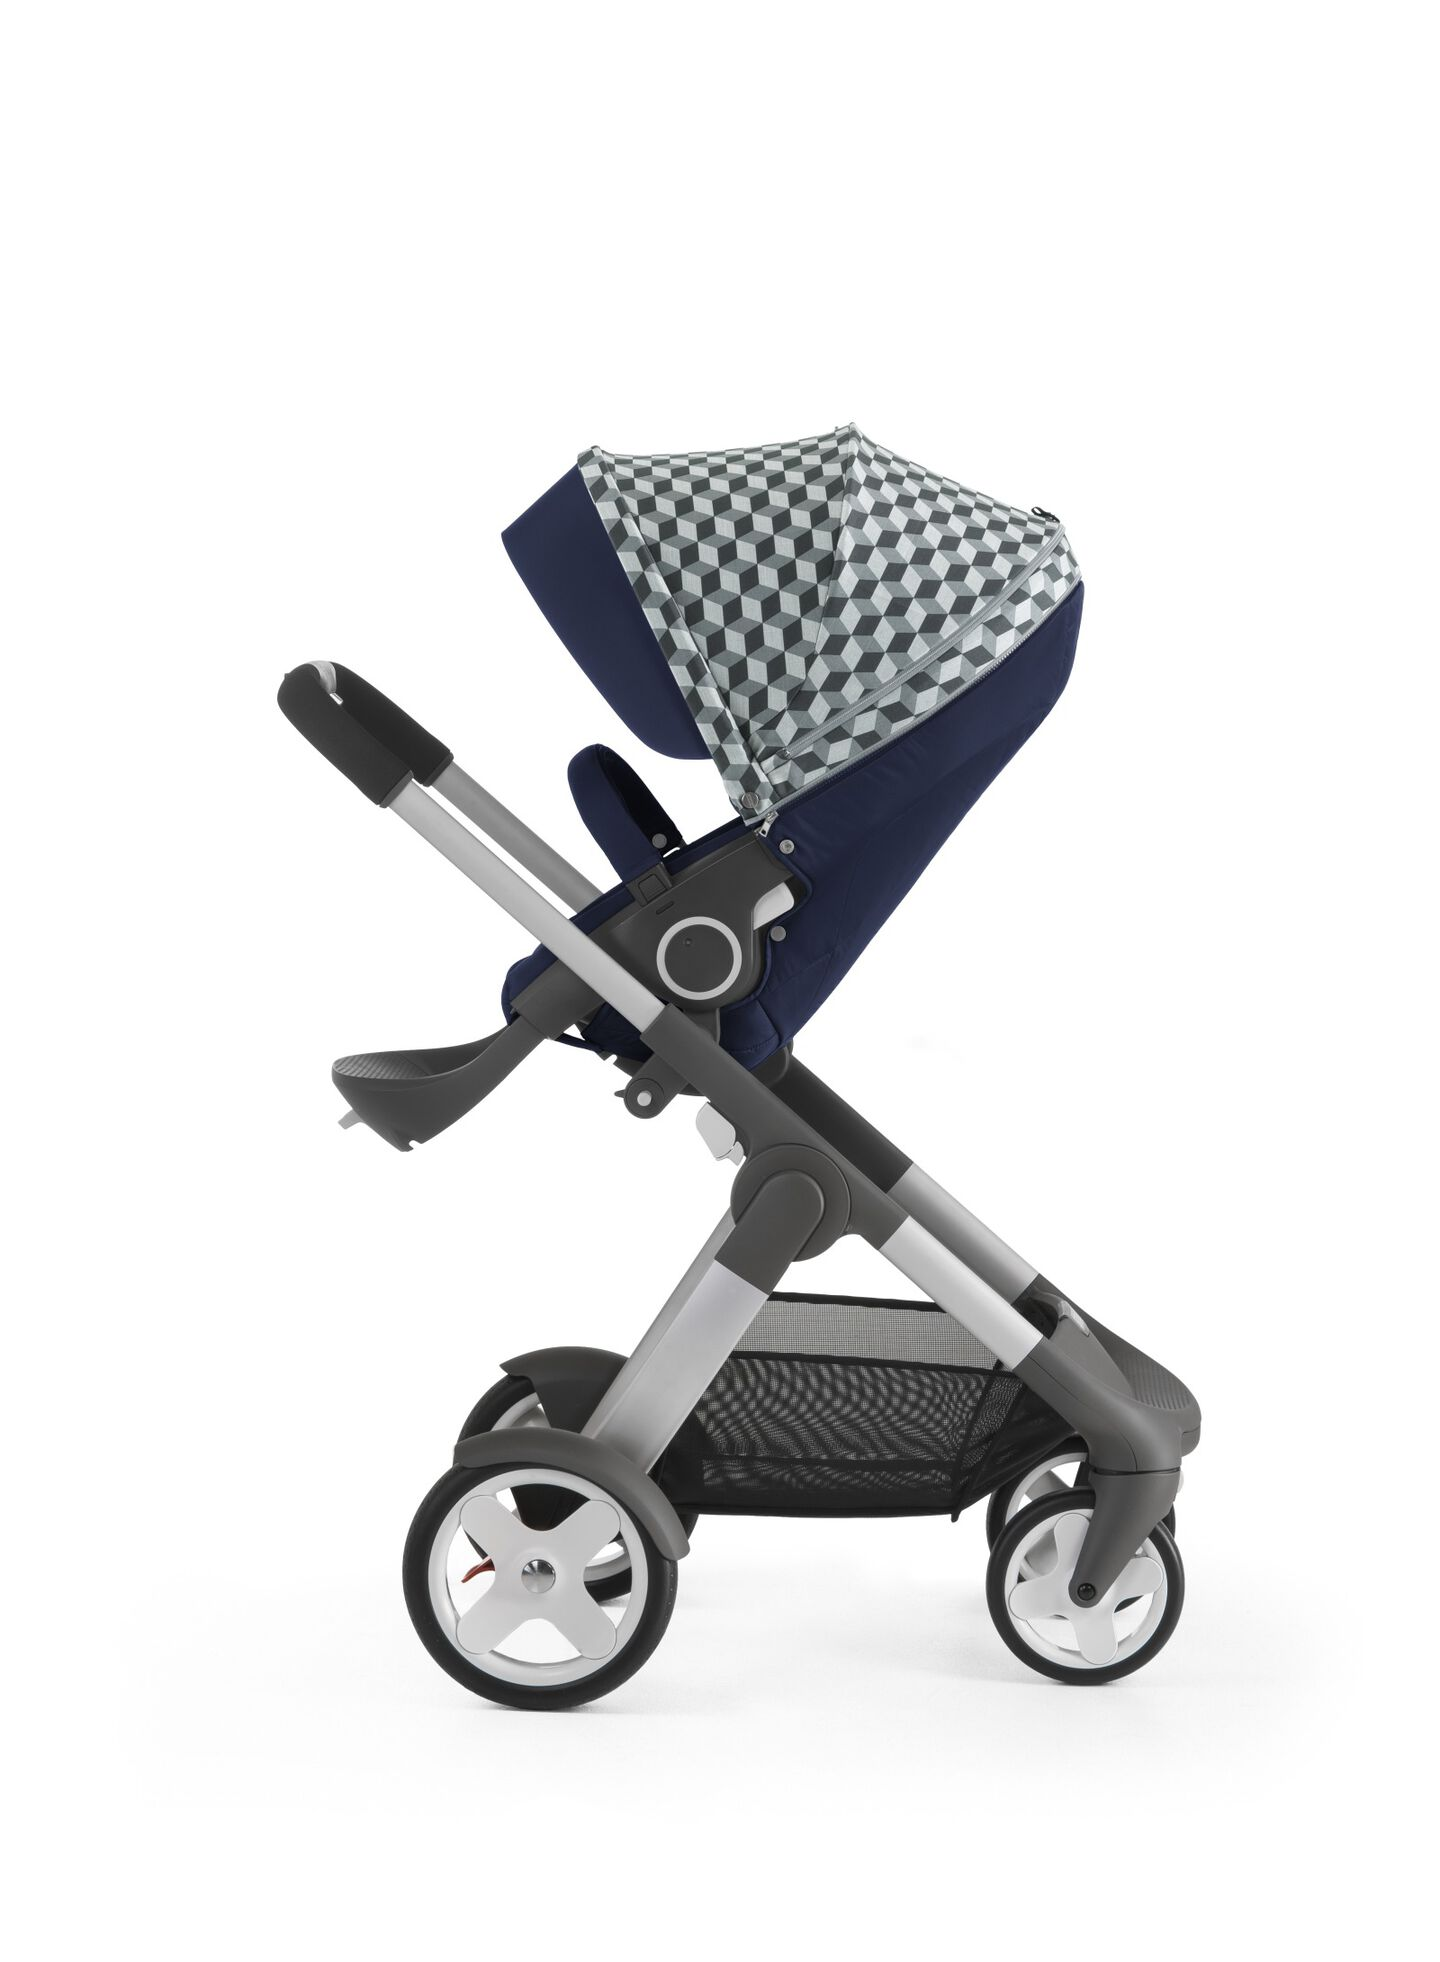 Stokke® Crusi™ with Stokke® Stroller Seat and Grey Cube Style Kit.